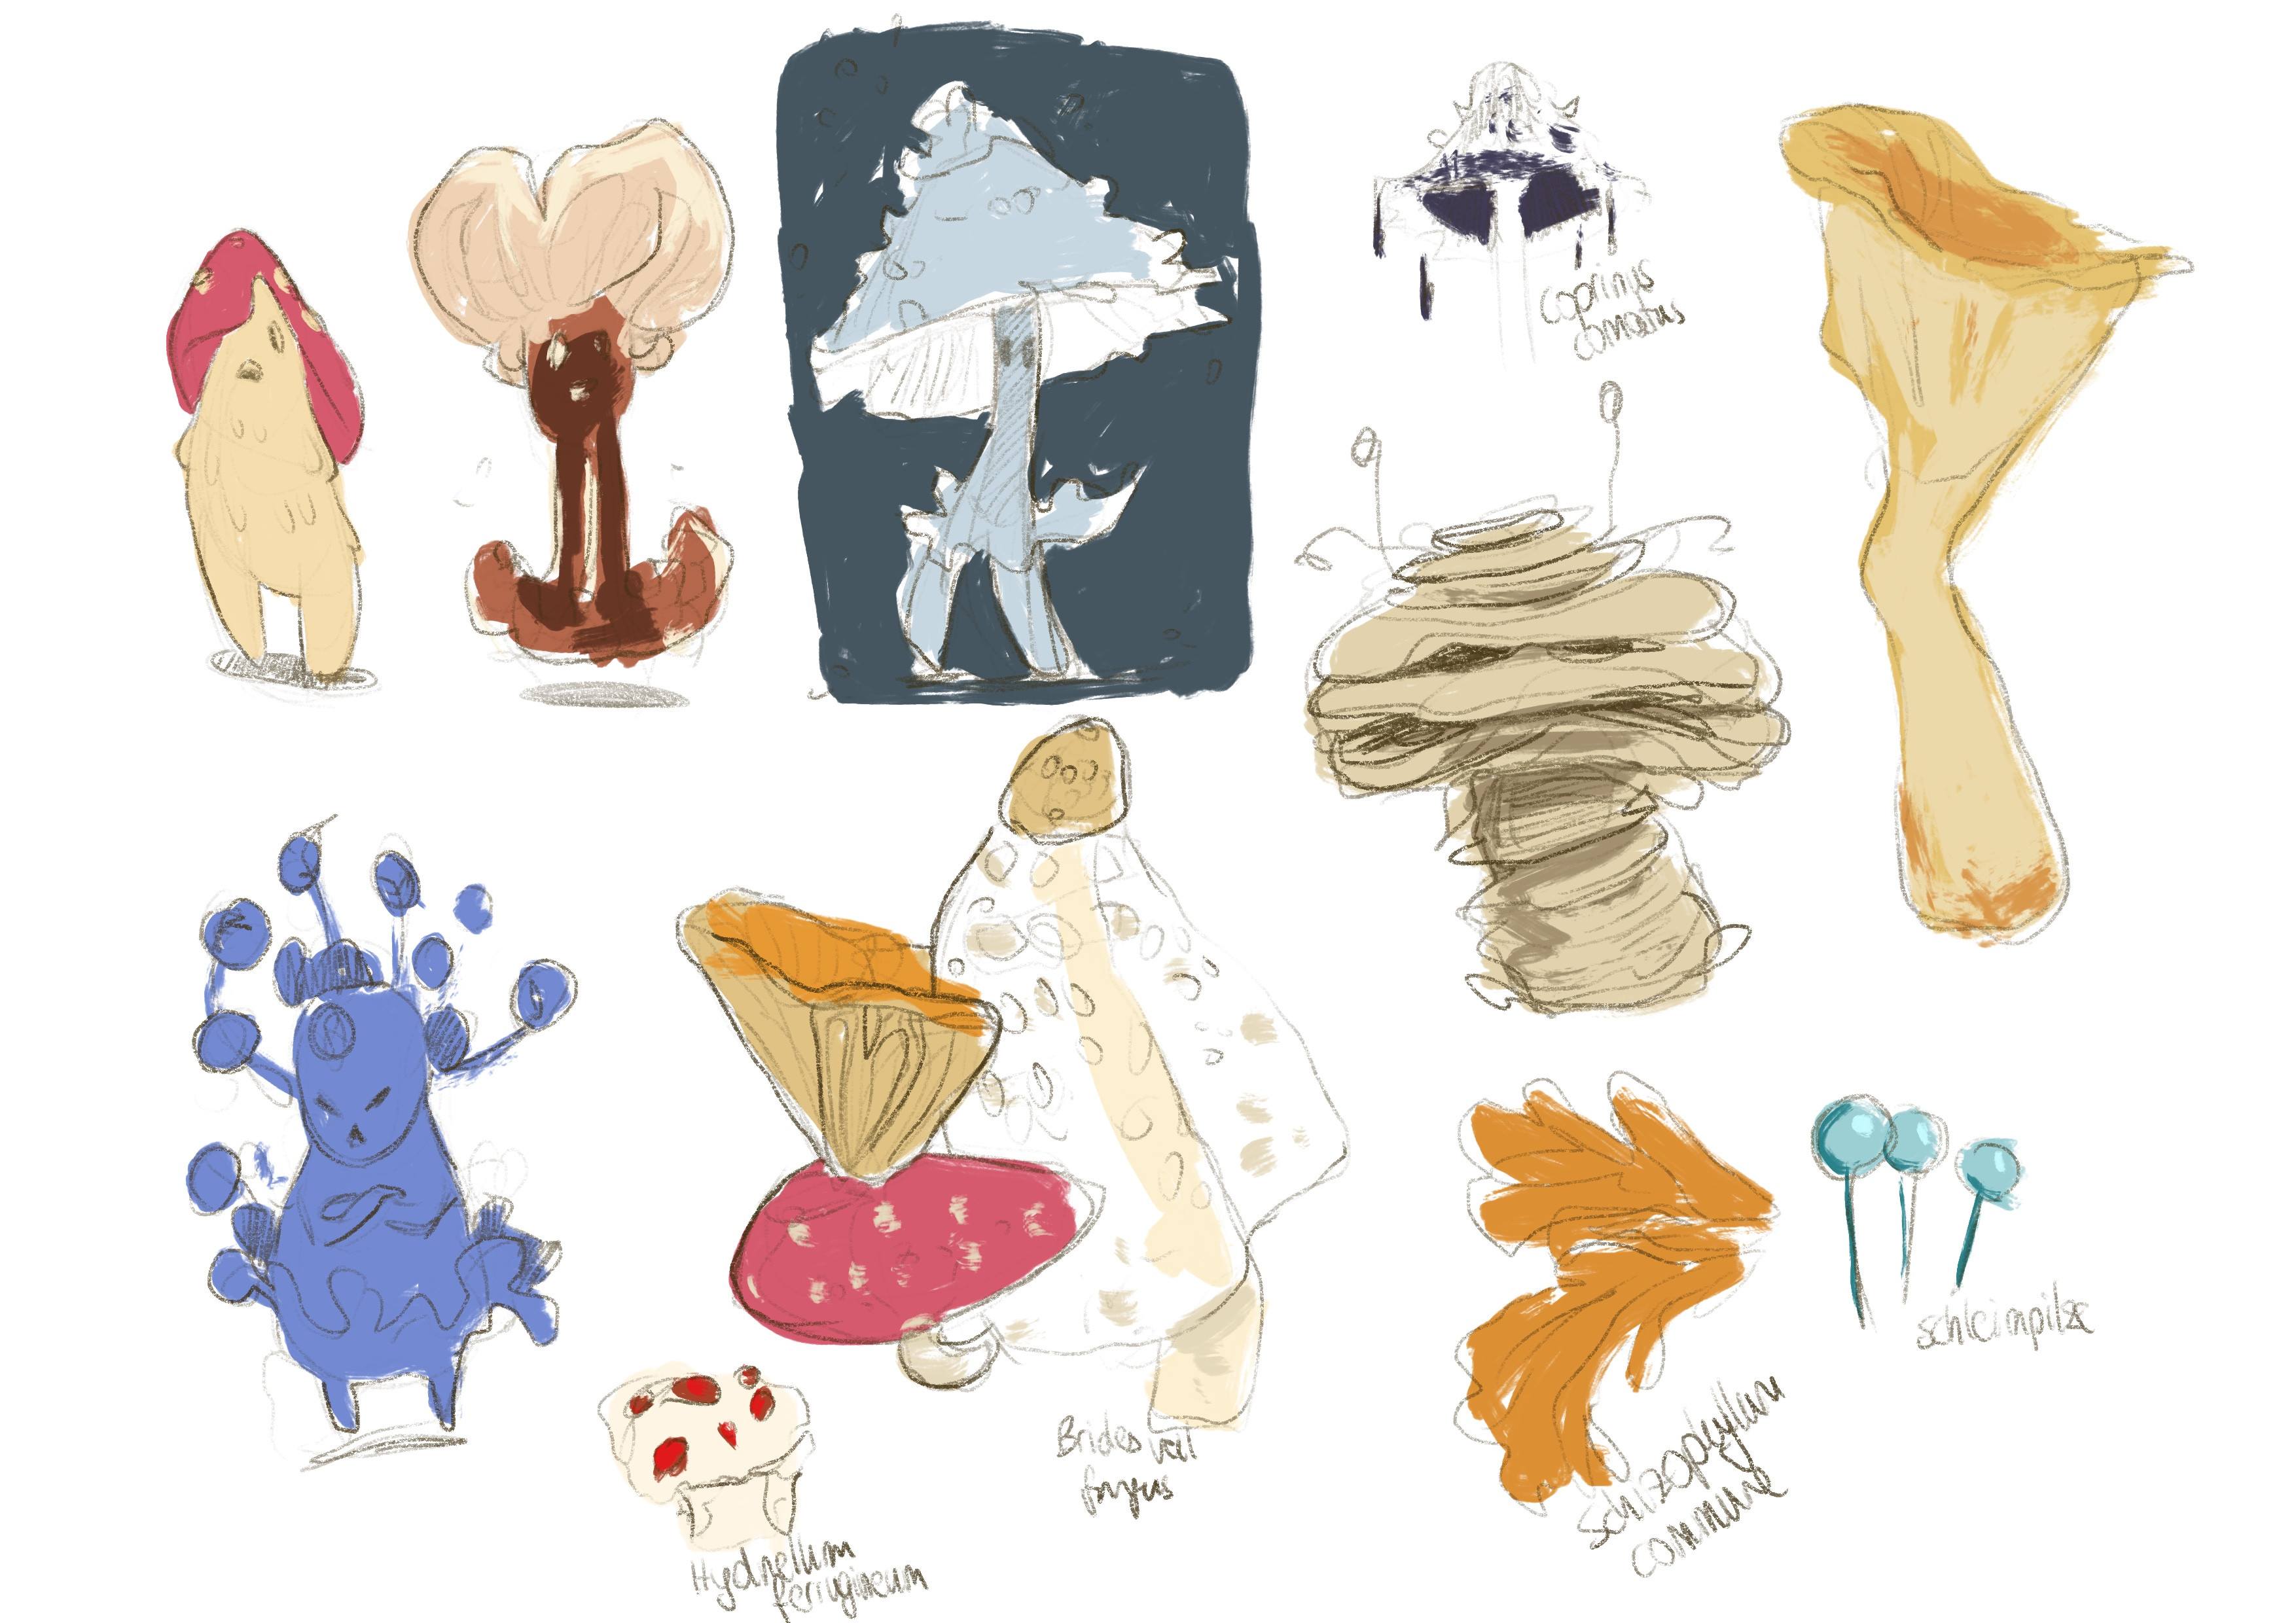 early sketches, getting to know different types of fungus.